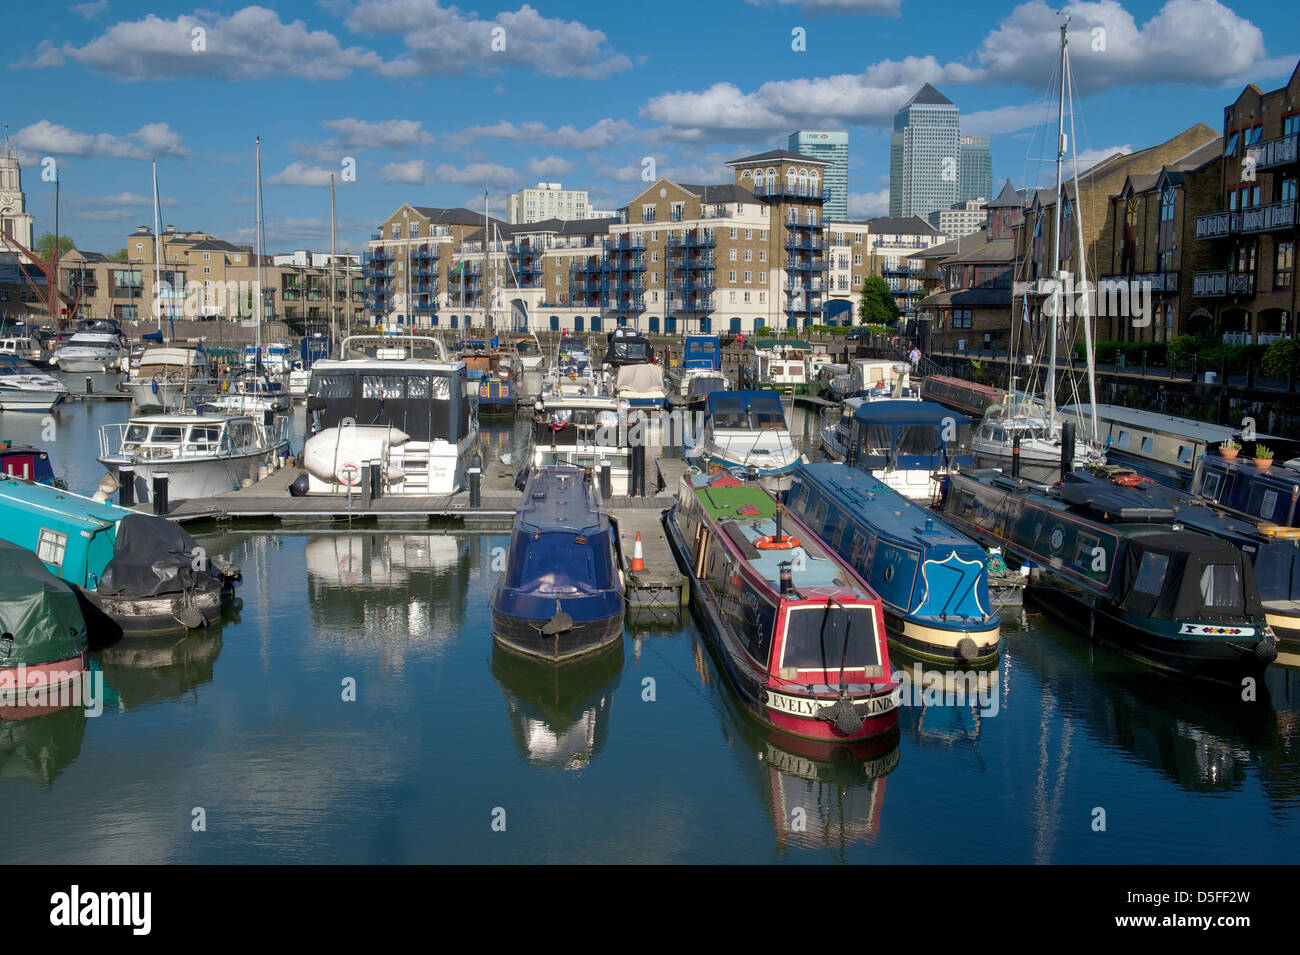 Narrow boats moored in Limehouse Basin with residential apartments and Canary Wharf in the background, London, UK - Stock Image